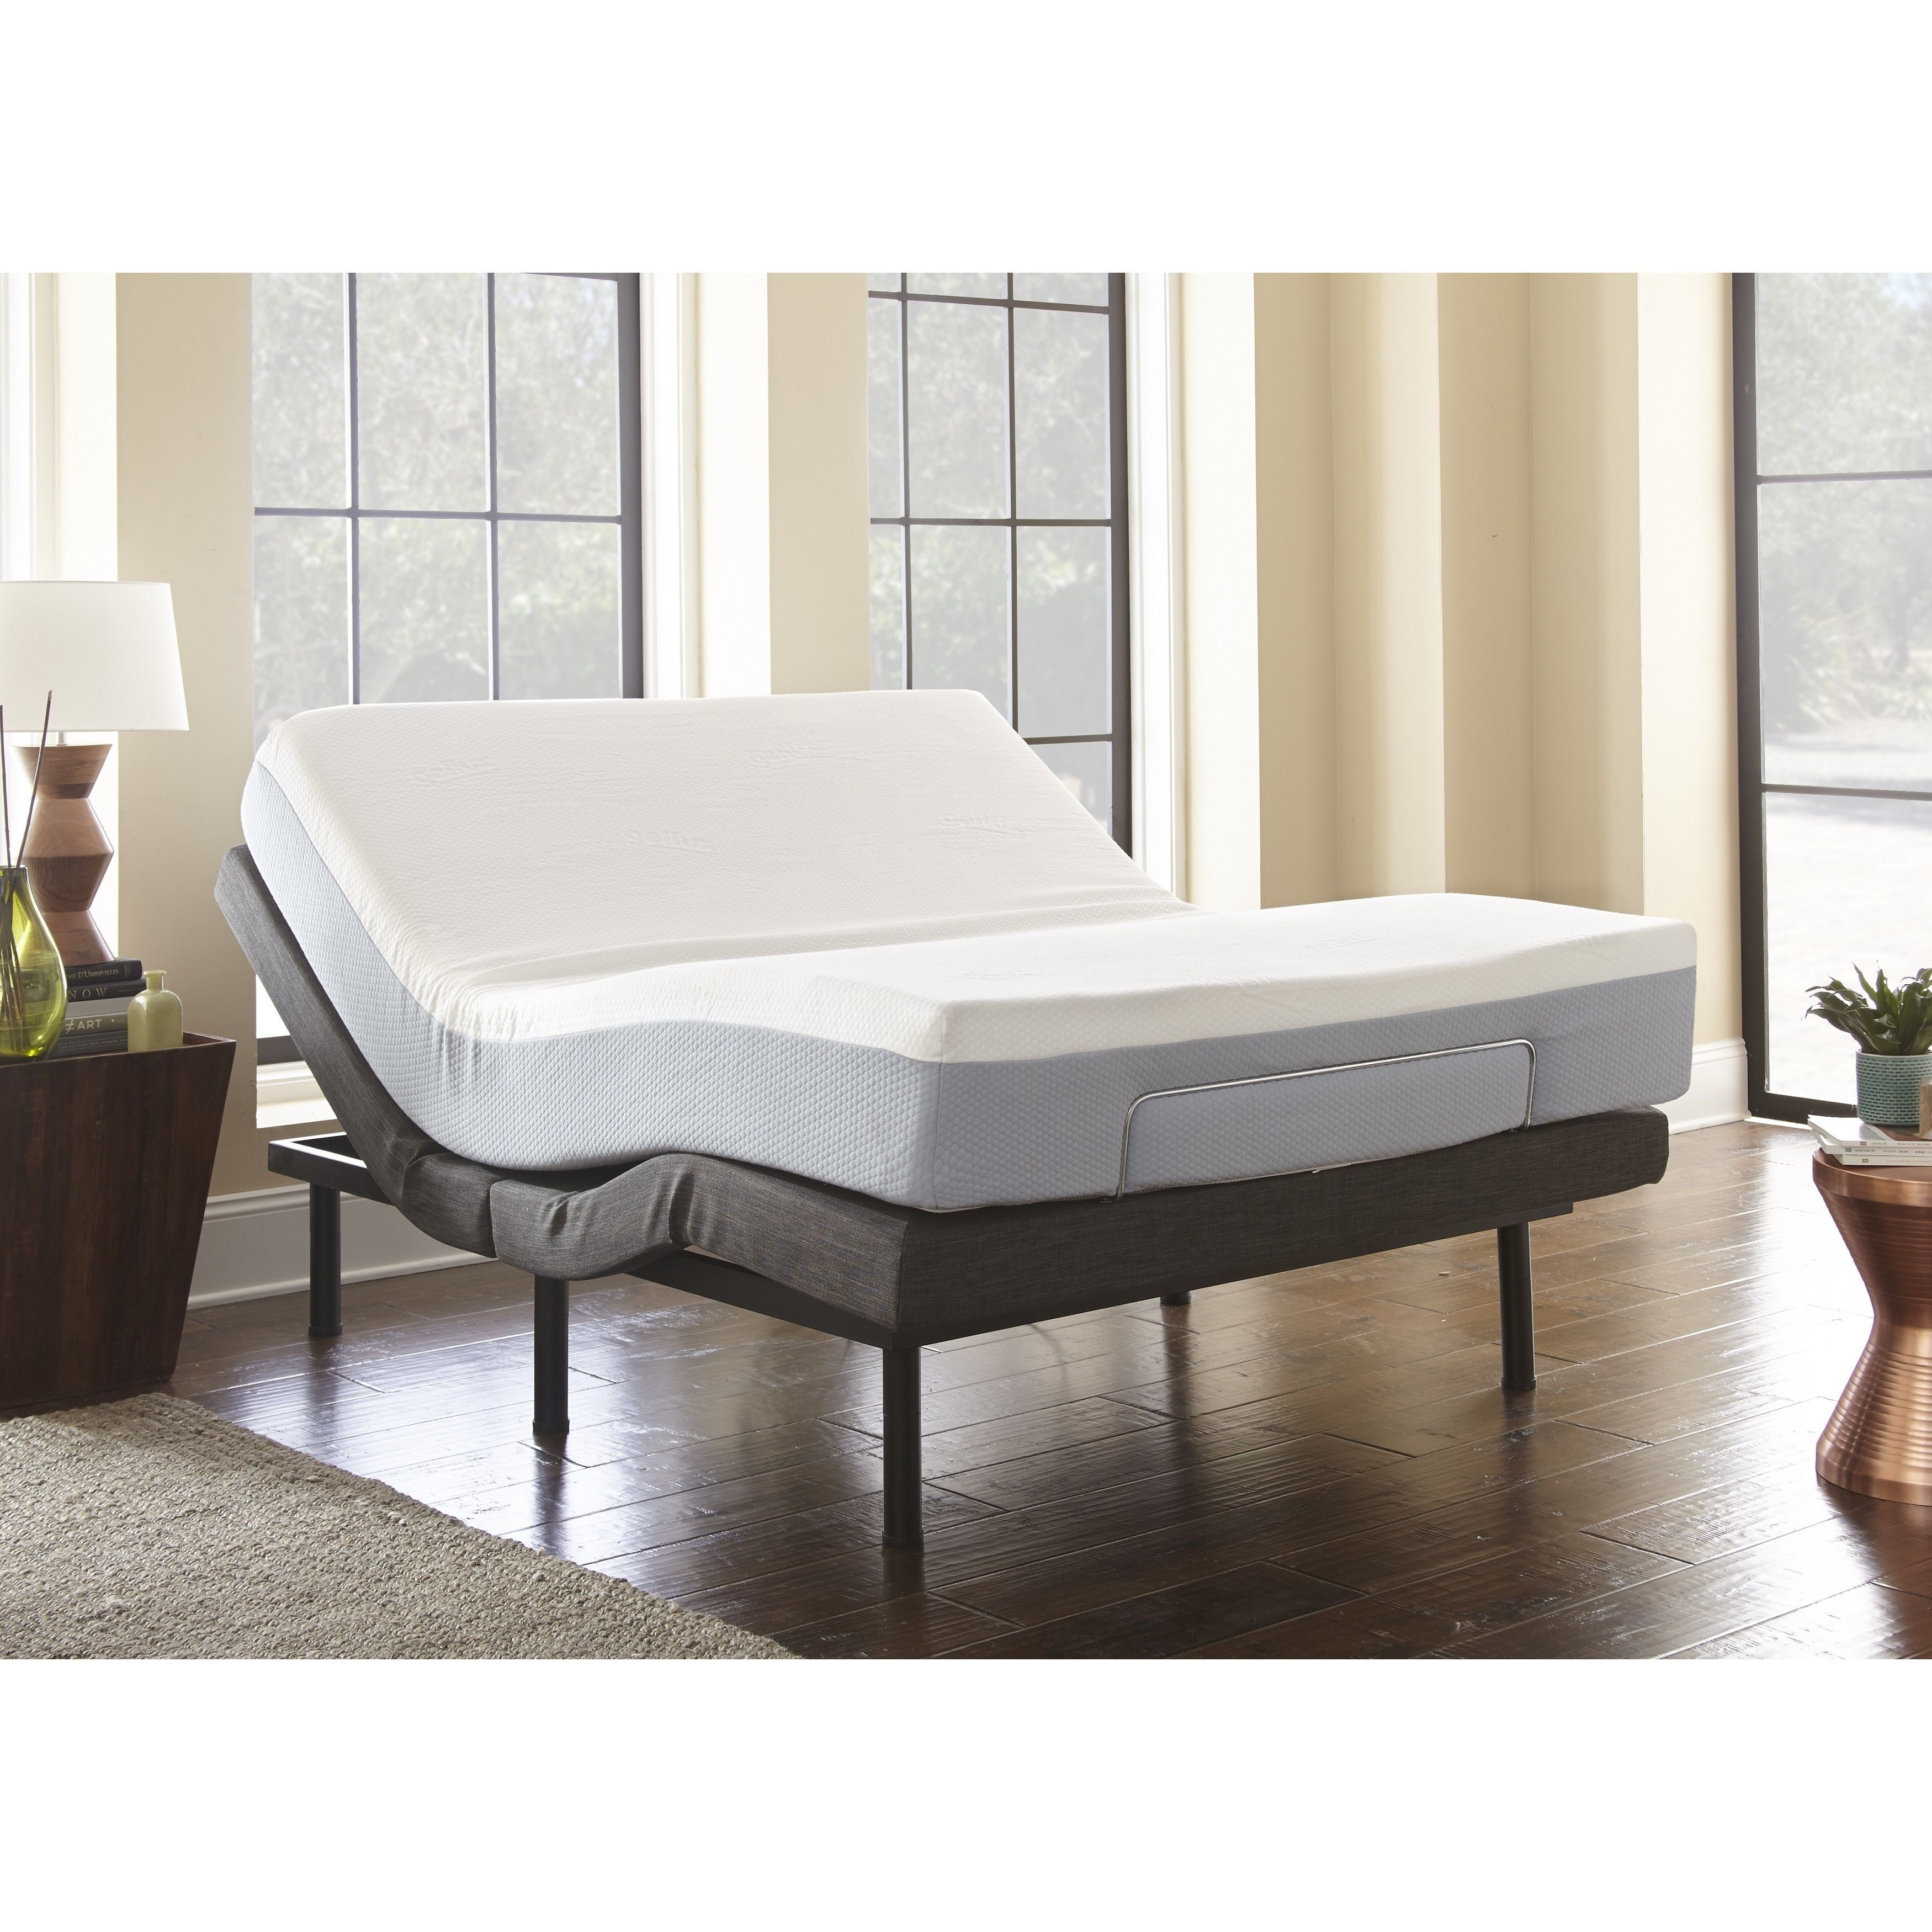 Adjustable Beds Adjustable Bed Frame Furniture